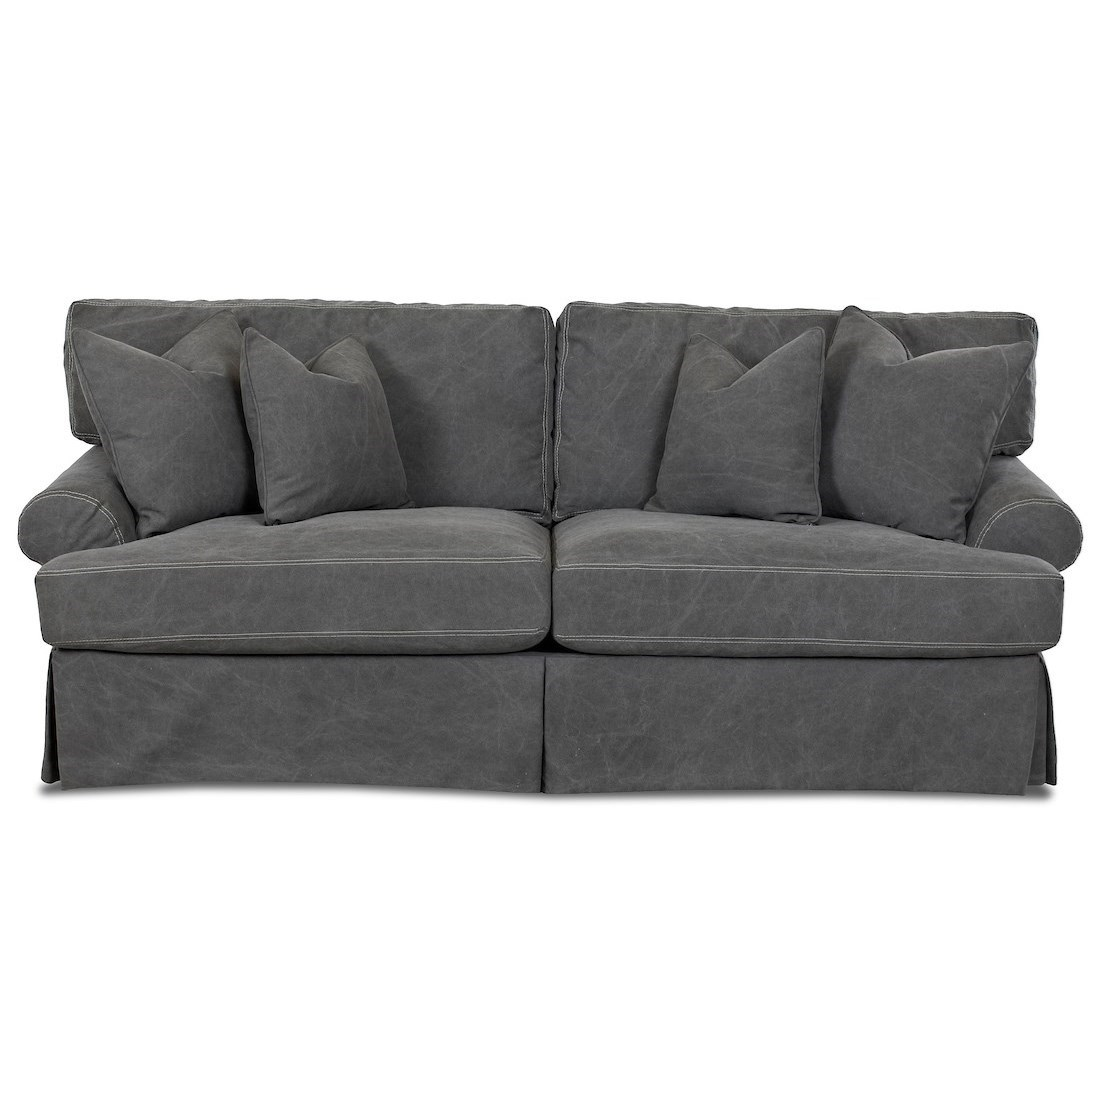 Lahoya Slipcover Dreamquest Sleeper Sofa by Klaussner at Rooms for Less